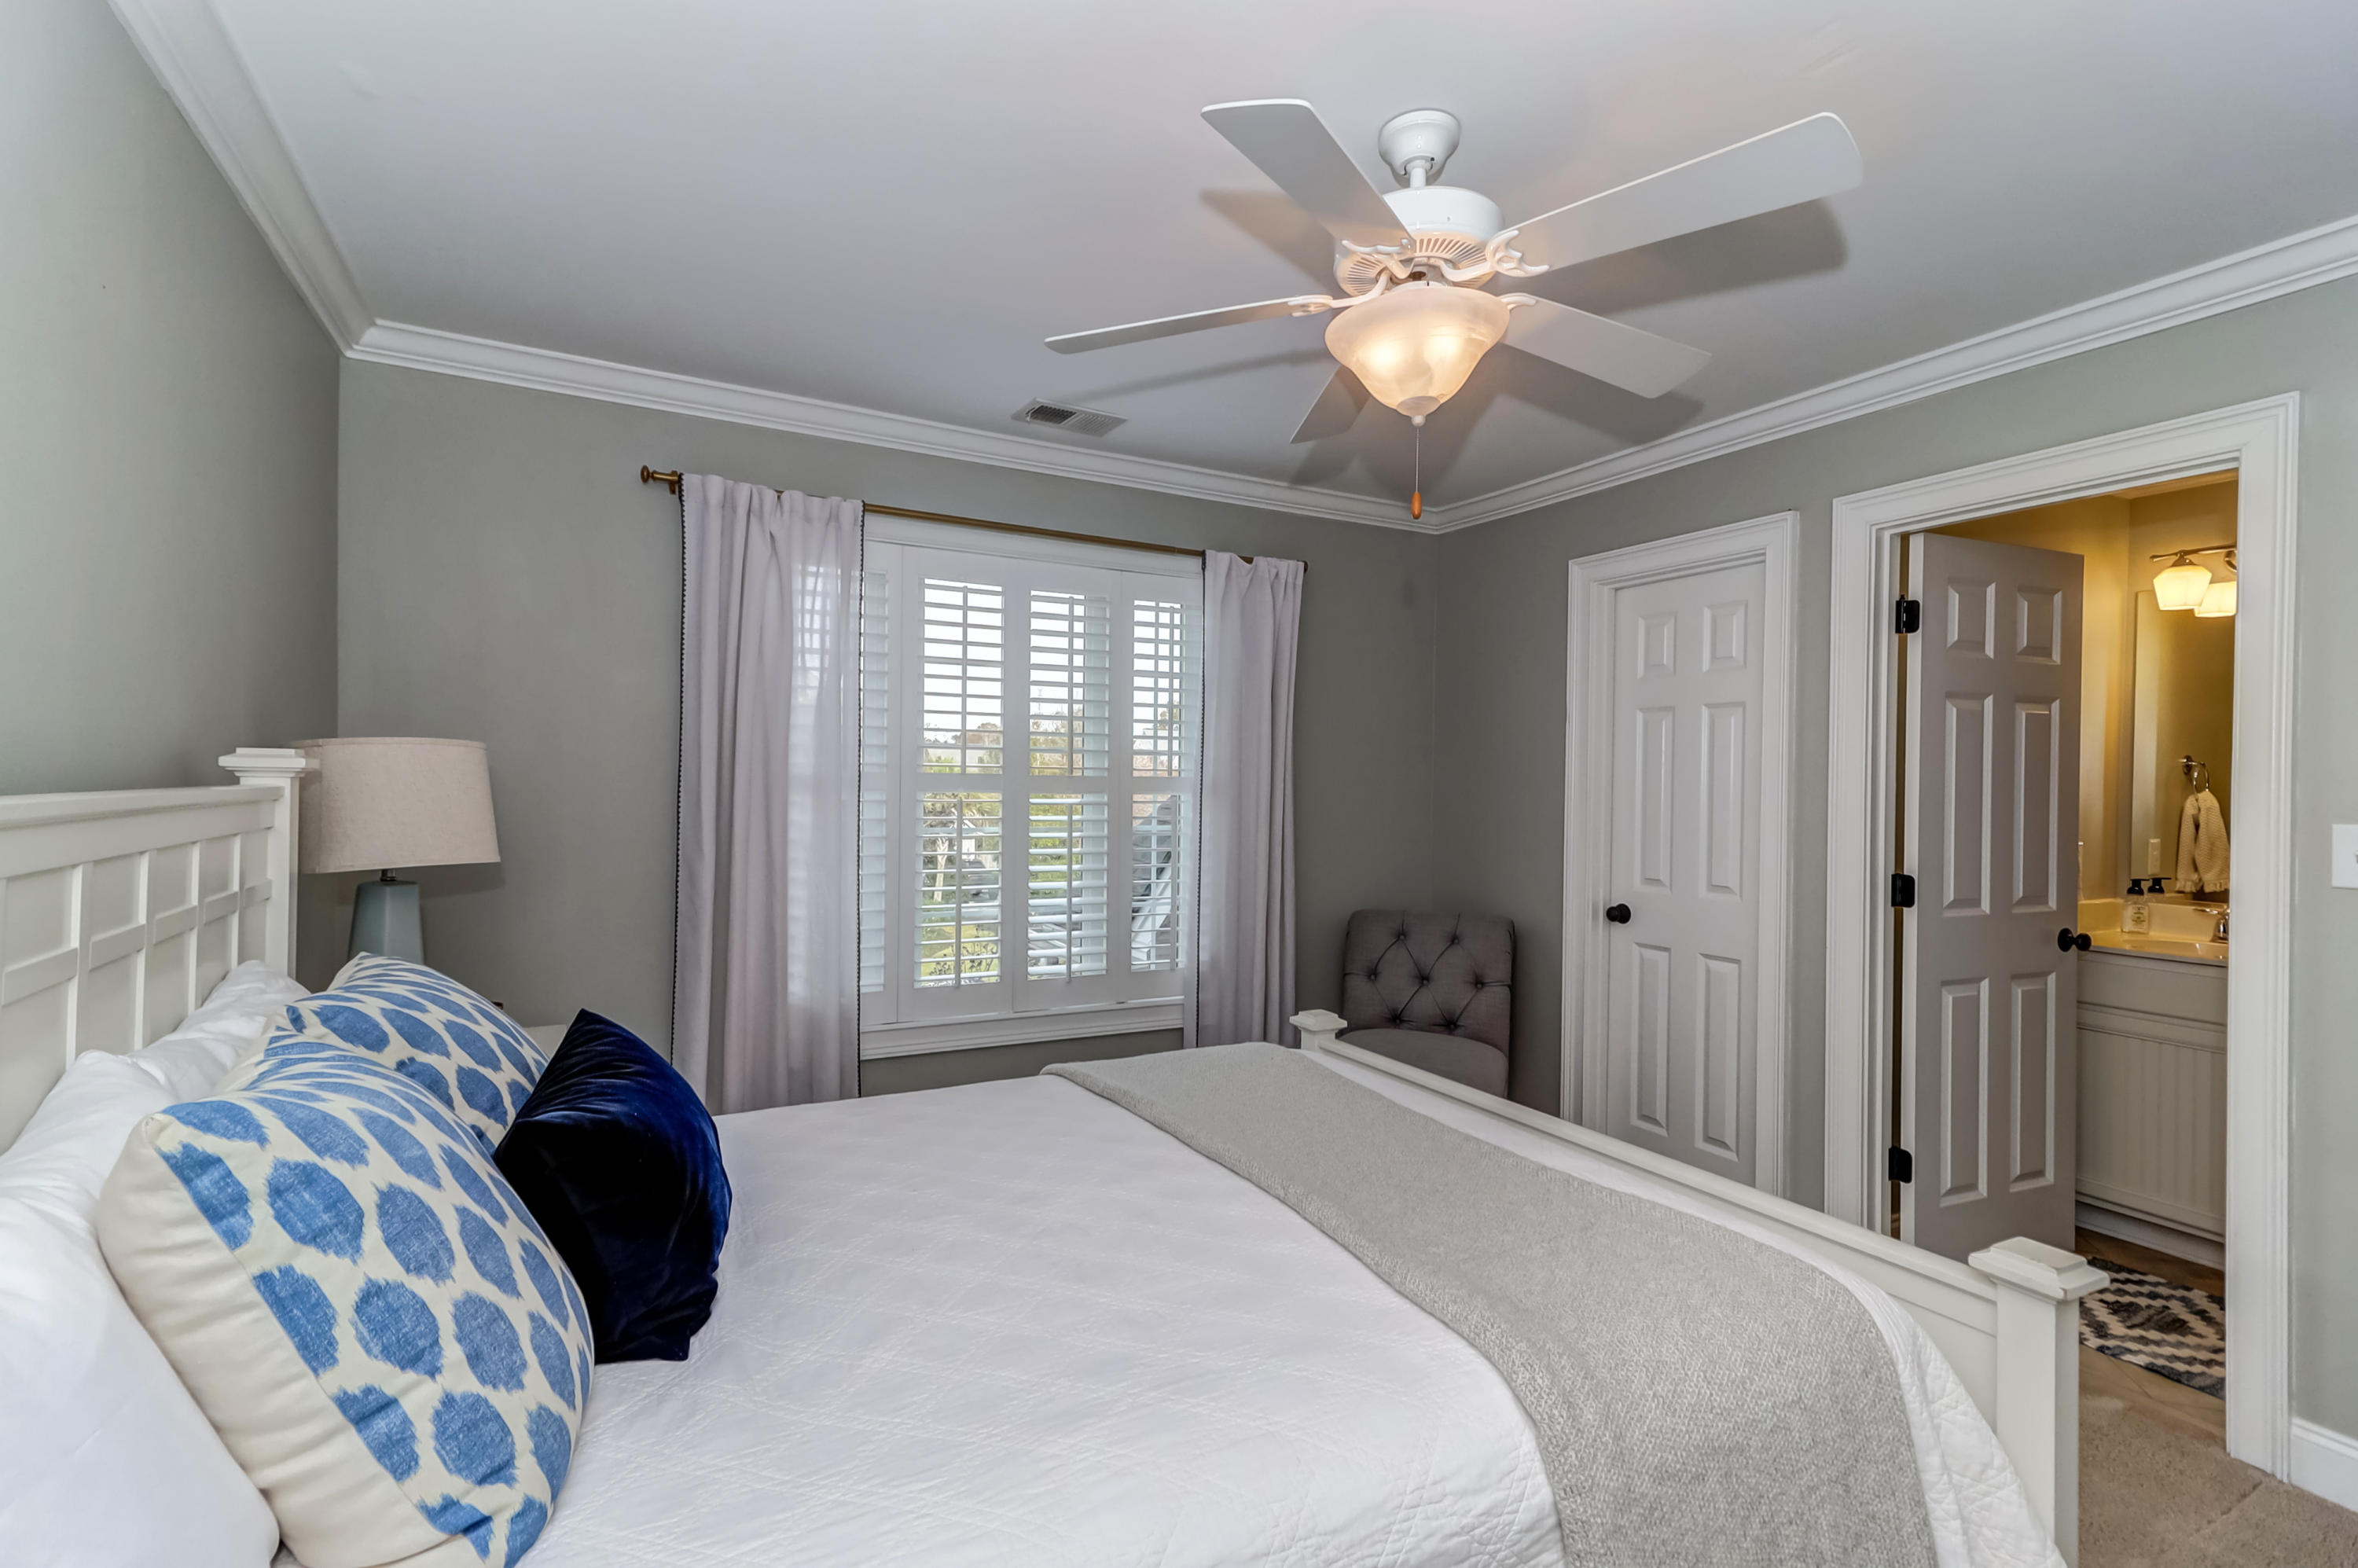 Woodward Pointe Homes For Sale - 657 White Chapel, Charleston, SC - 19